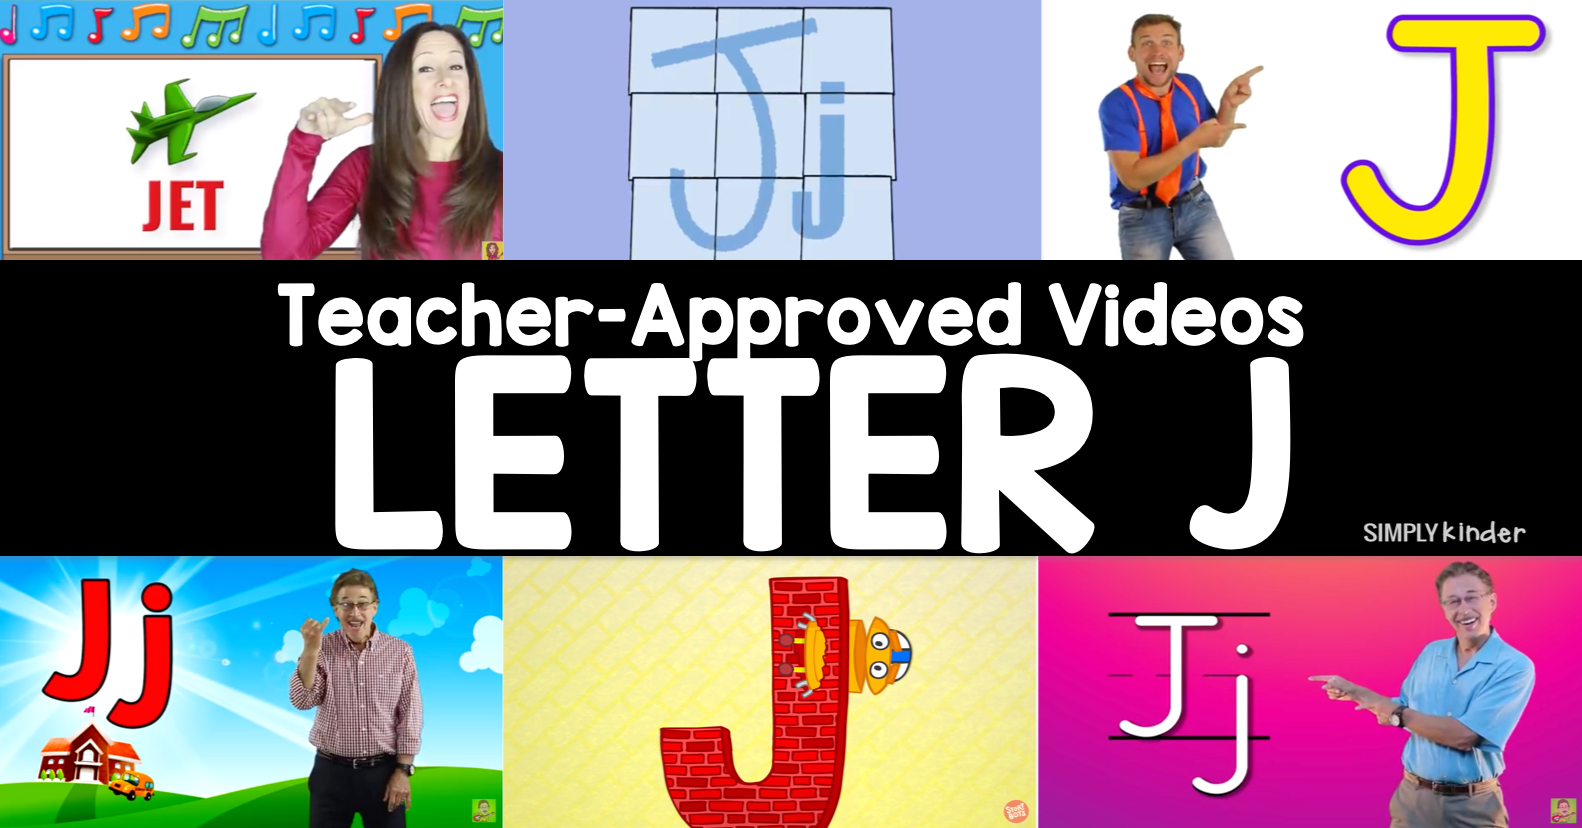 Teacher-Approved Videos Letter J